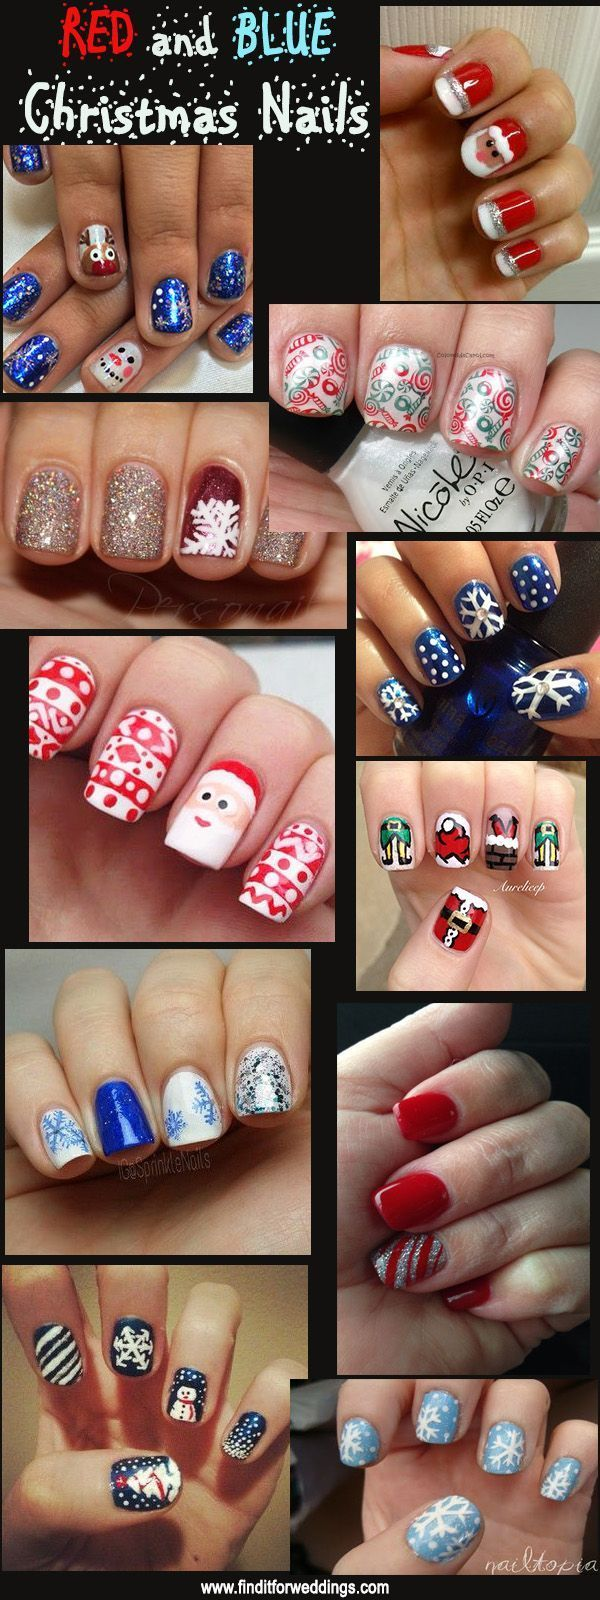 best Nails images on Pinterest  Christmas nails Holiday nails